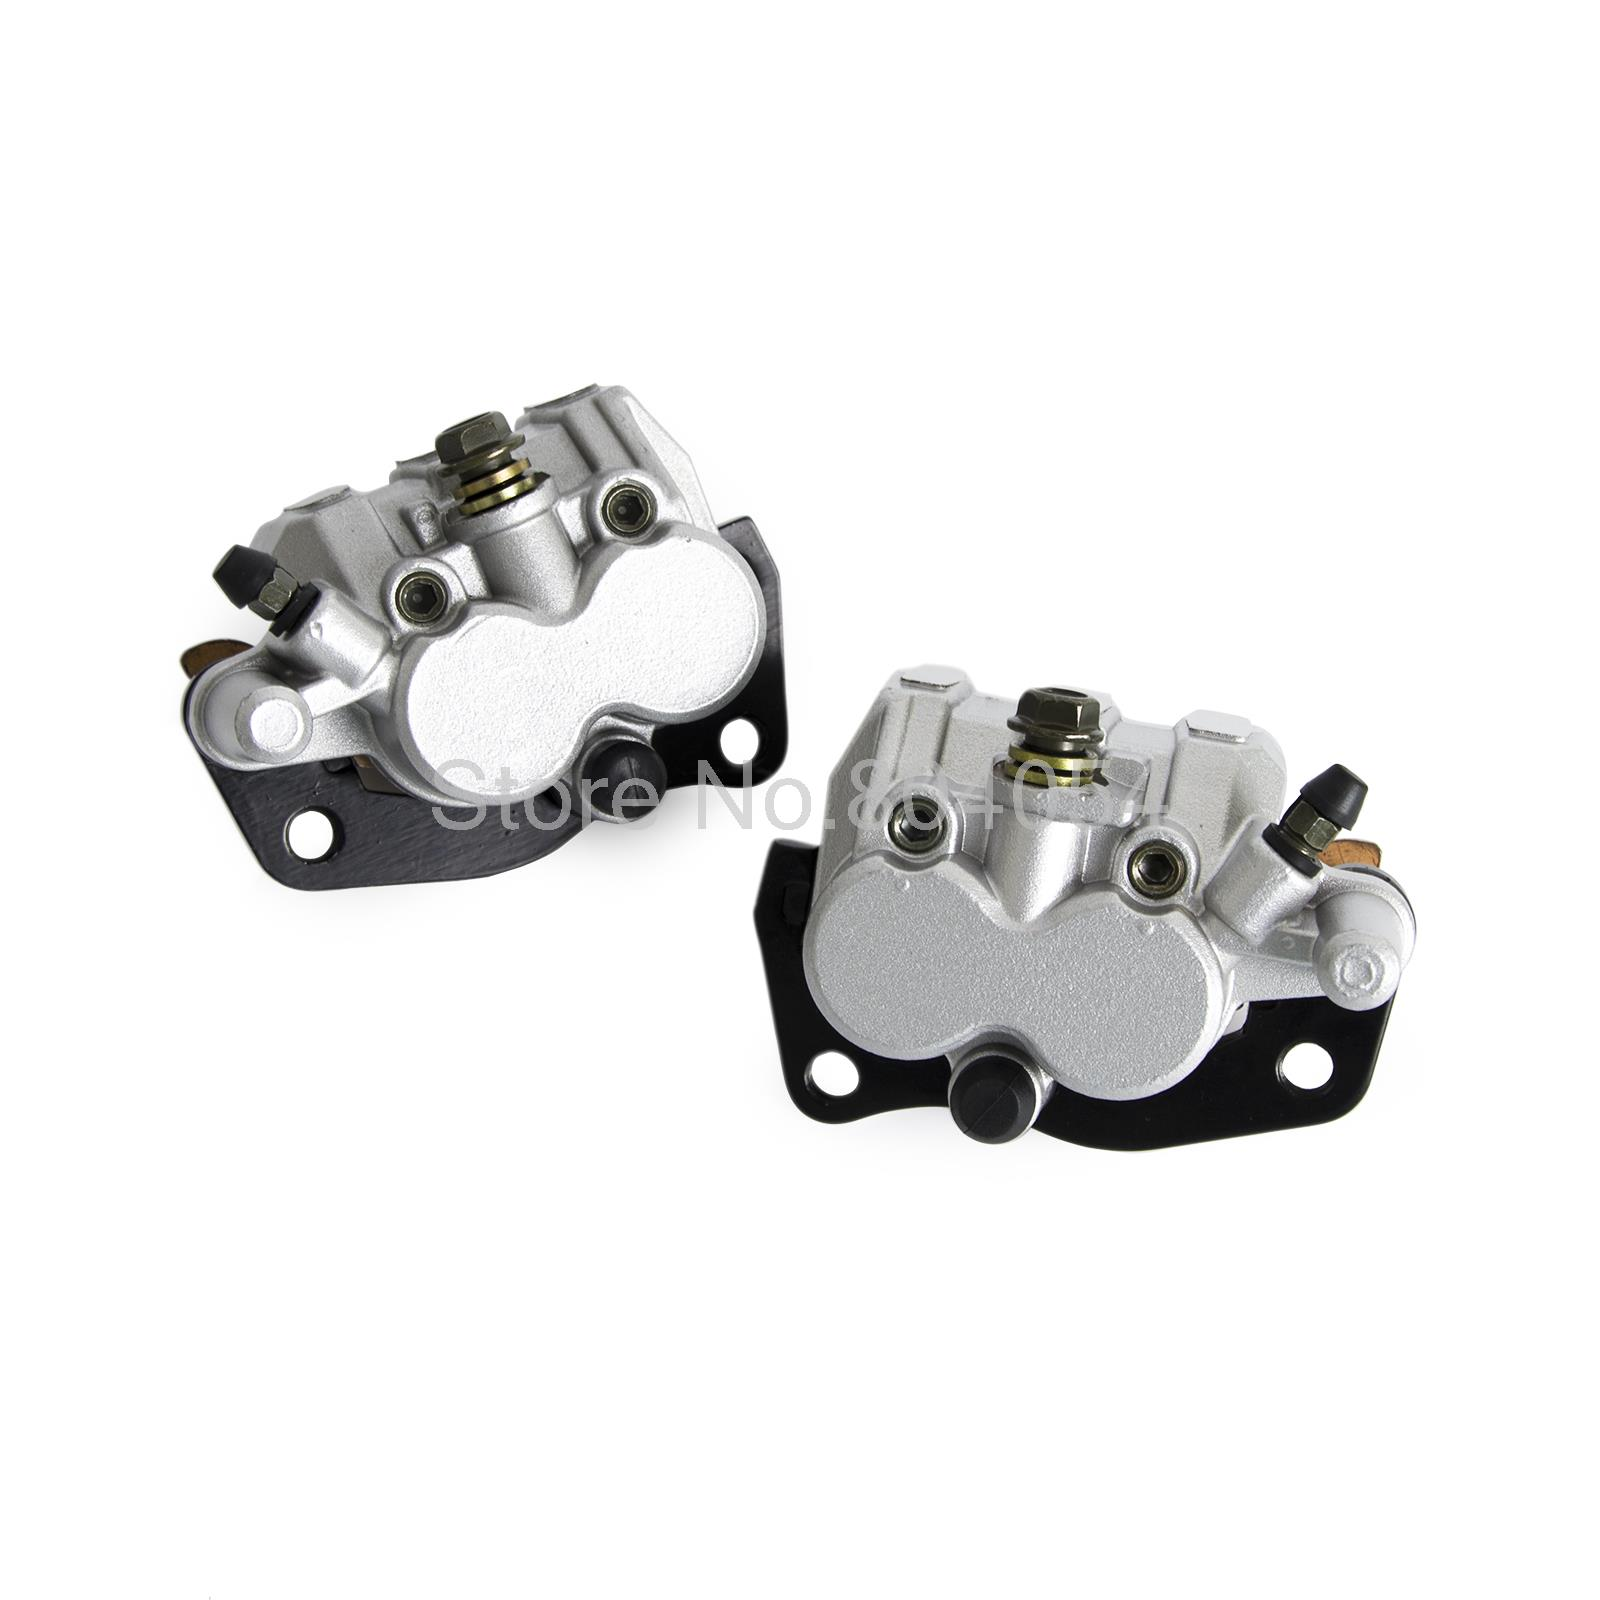 Front Right & Left Brake Caliper With Pads For Suzuki Burgman AN400 2007 2008 2009 2010 2011 front left and right brake caliper suit for atv xplorer 250 400 1999 2002 4x4